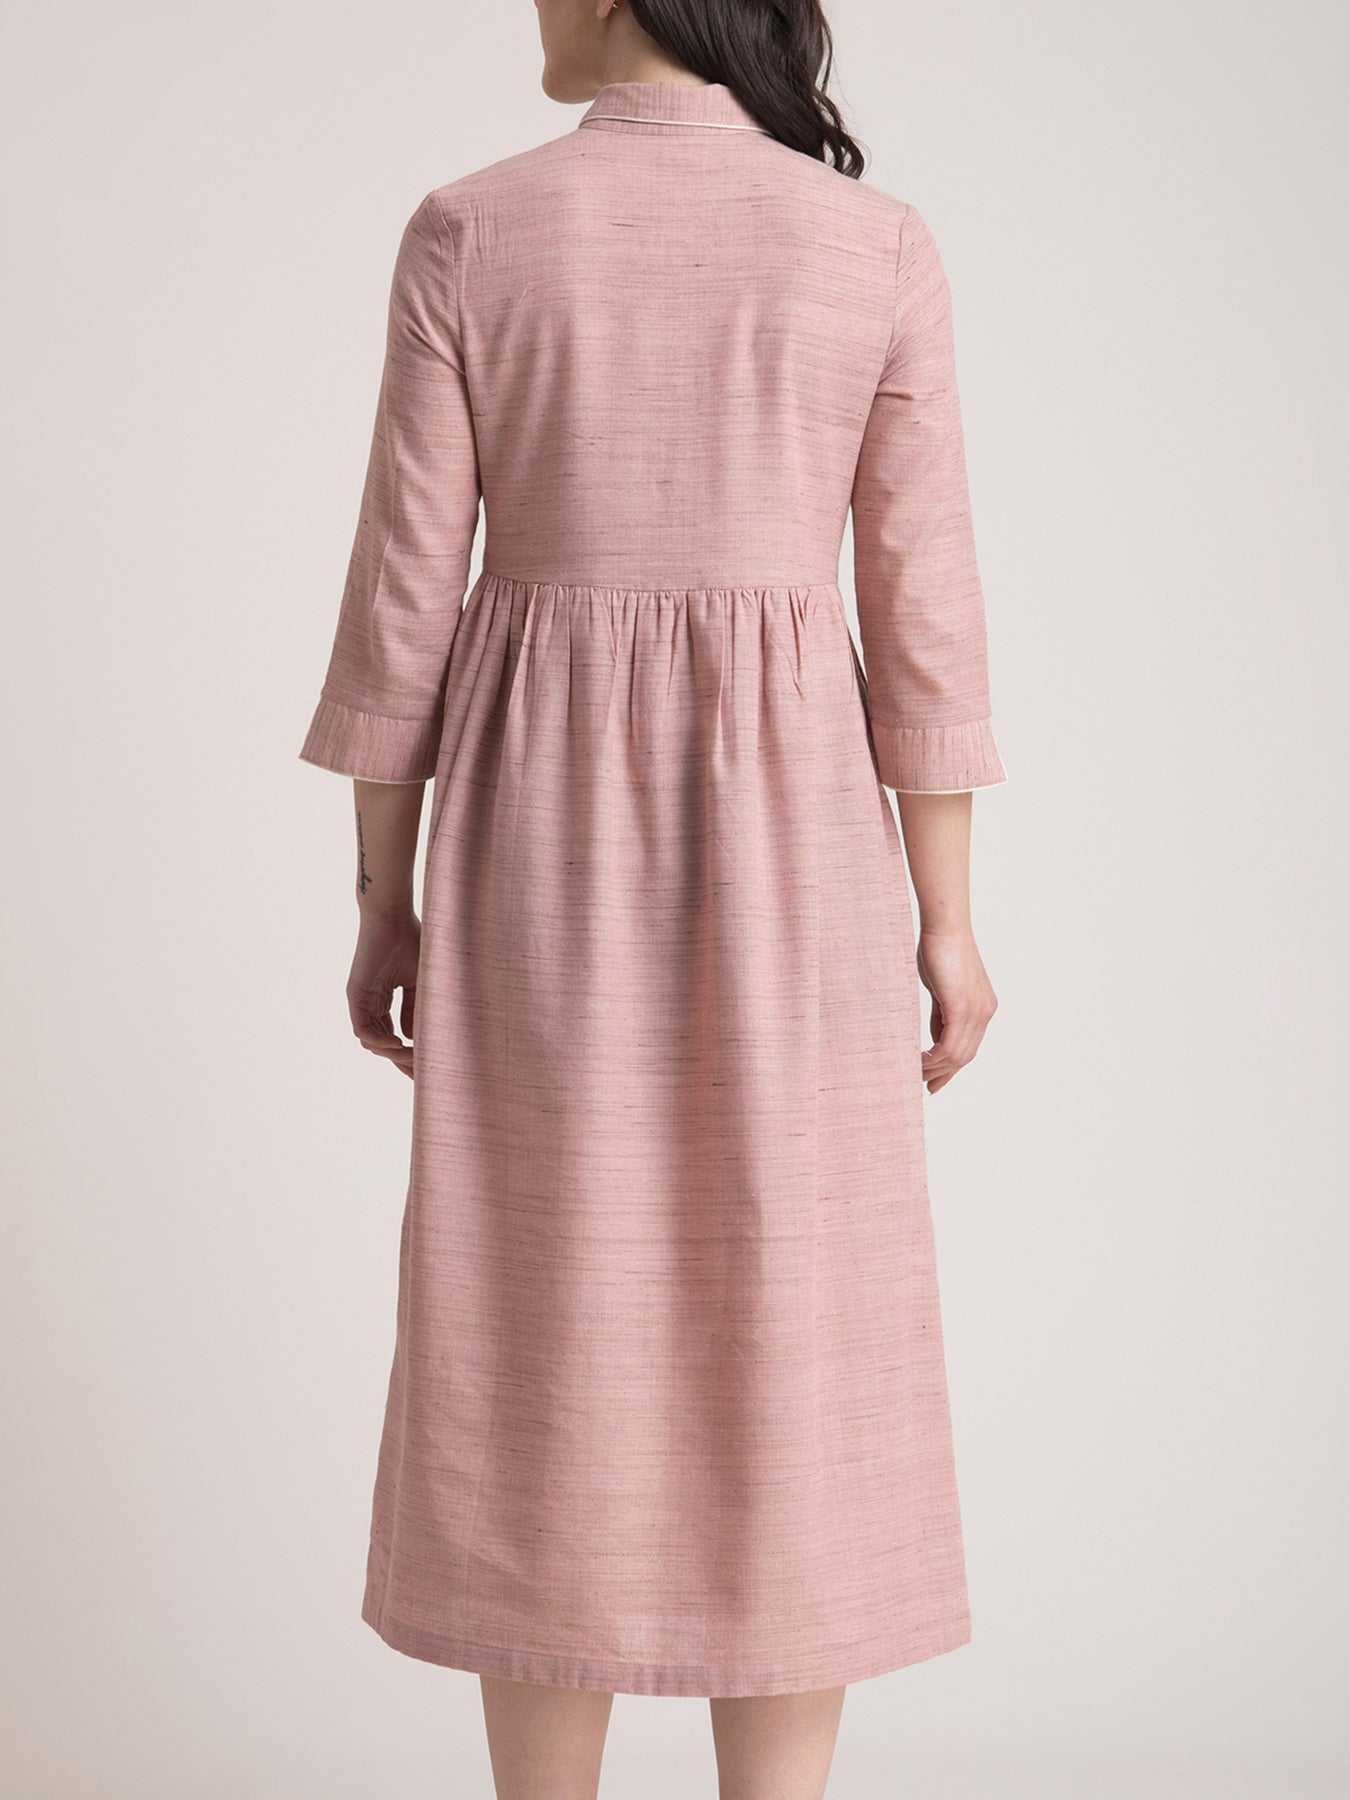 Khadi Collared Fit and Flare Dress - Dusty Pink